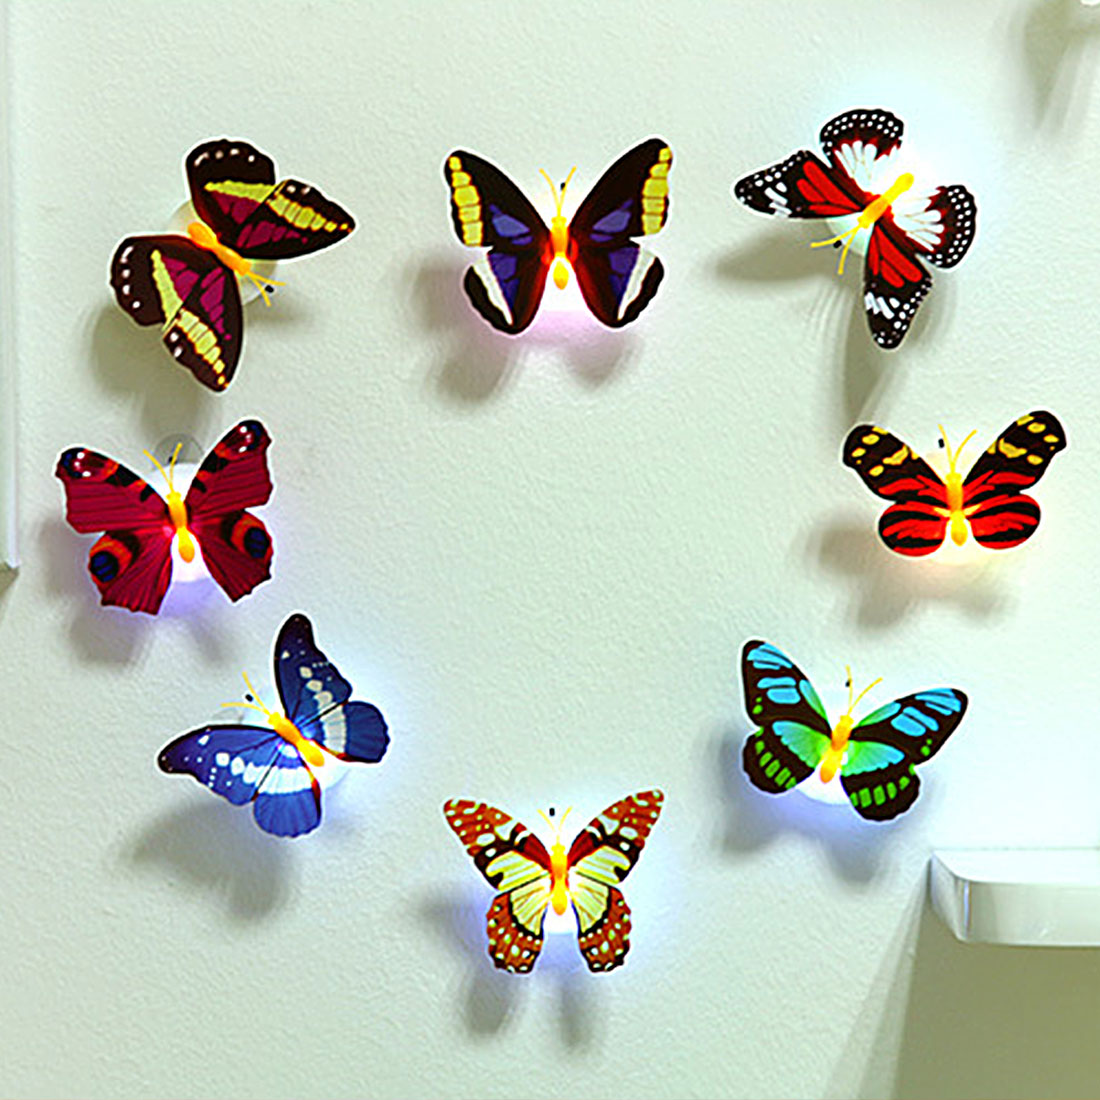 Led Night Lights 2019 Latest Design Romantic Led Night Light Atmosphere Lamp Colorful Butterfly Indoor Light With Suction Pad Home Party Desk Wall Decoration